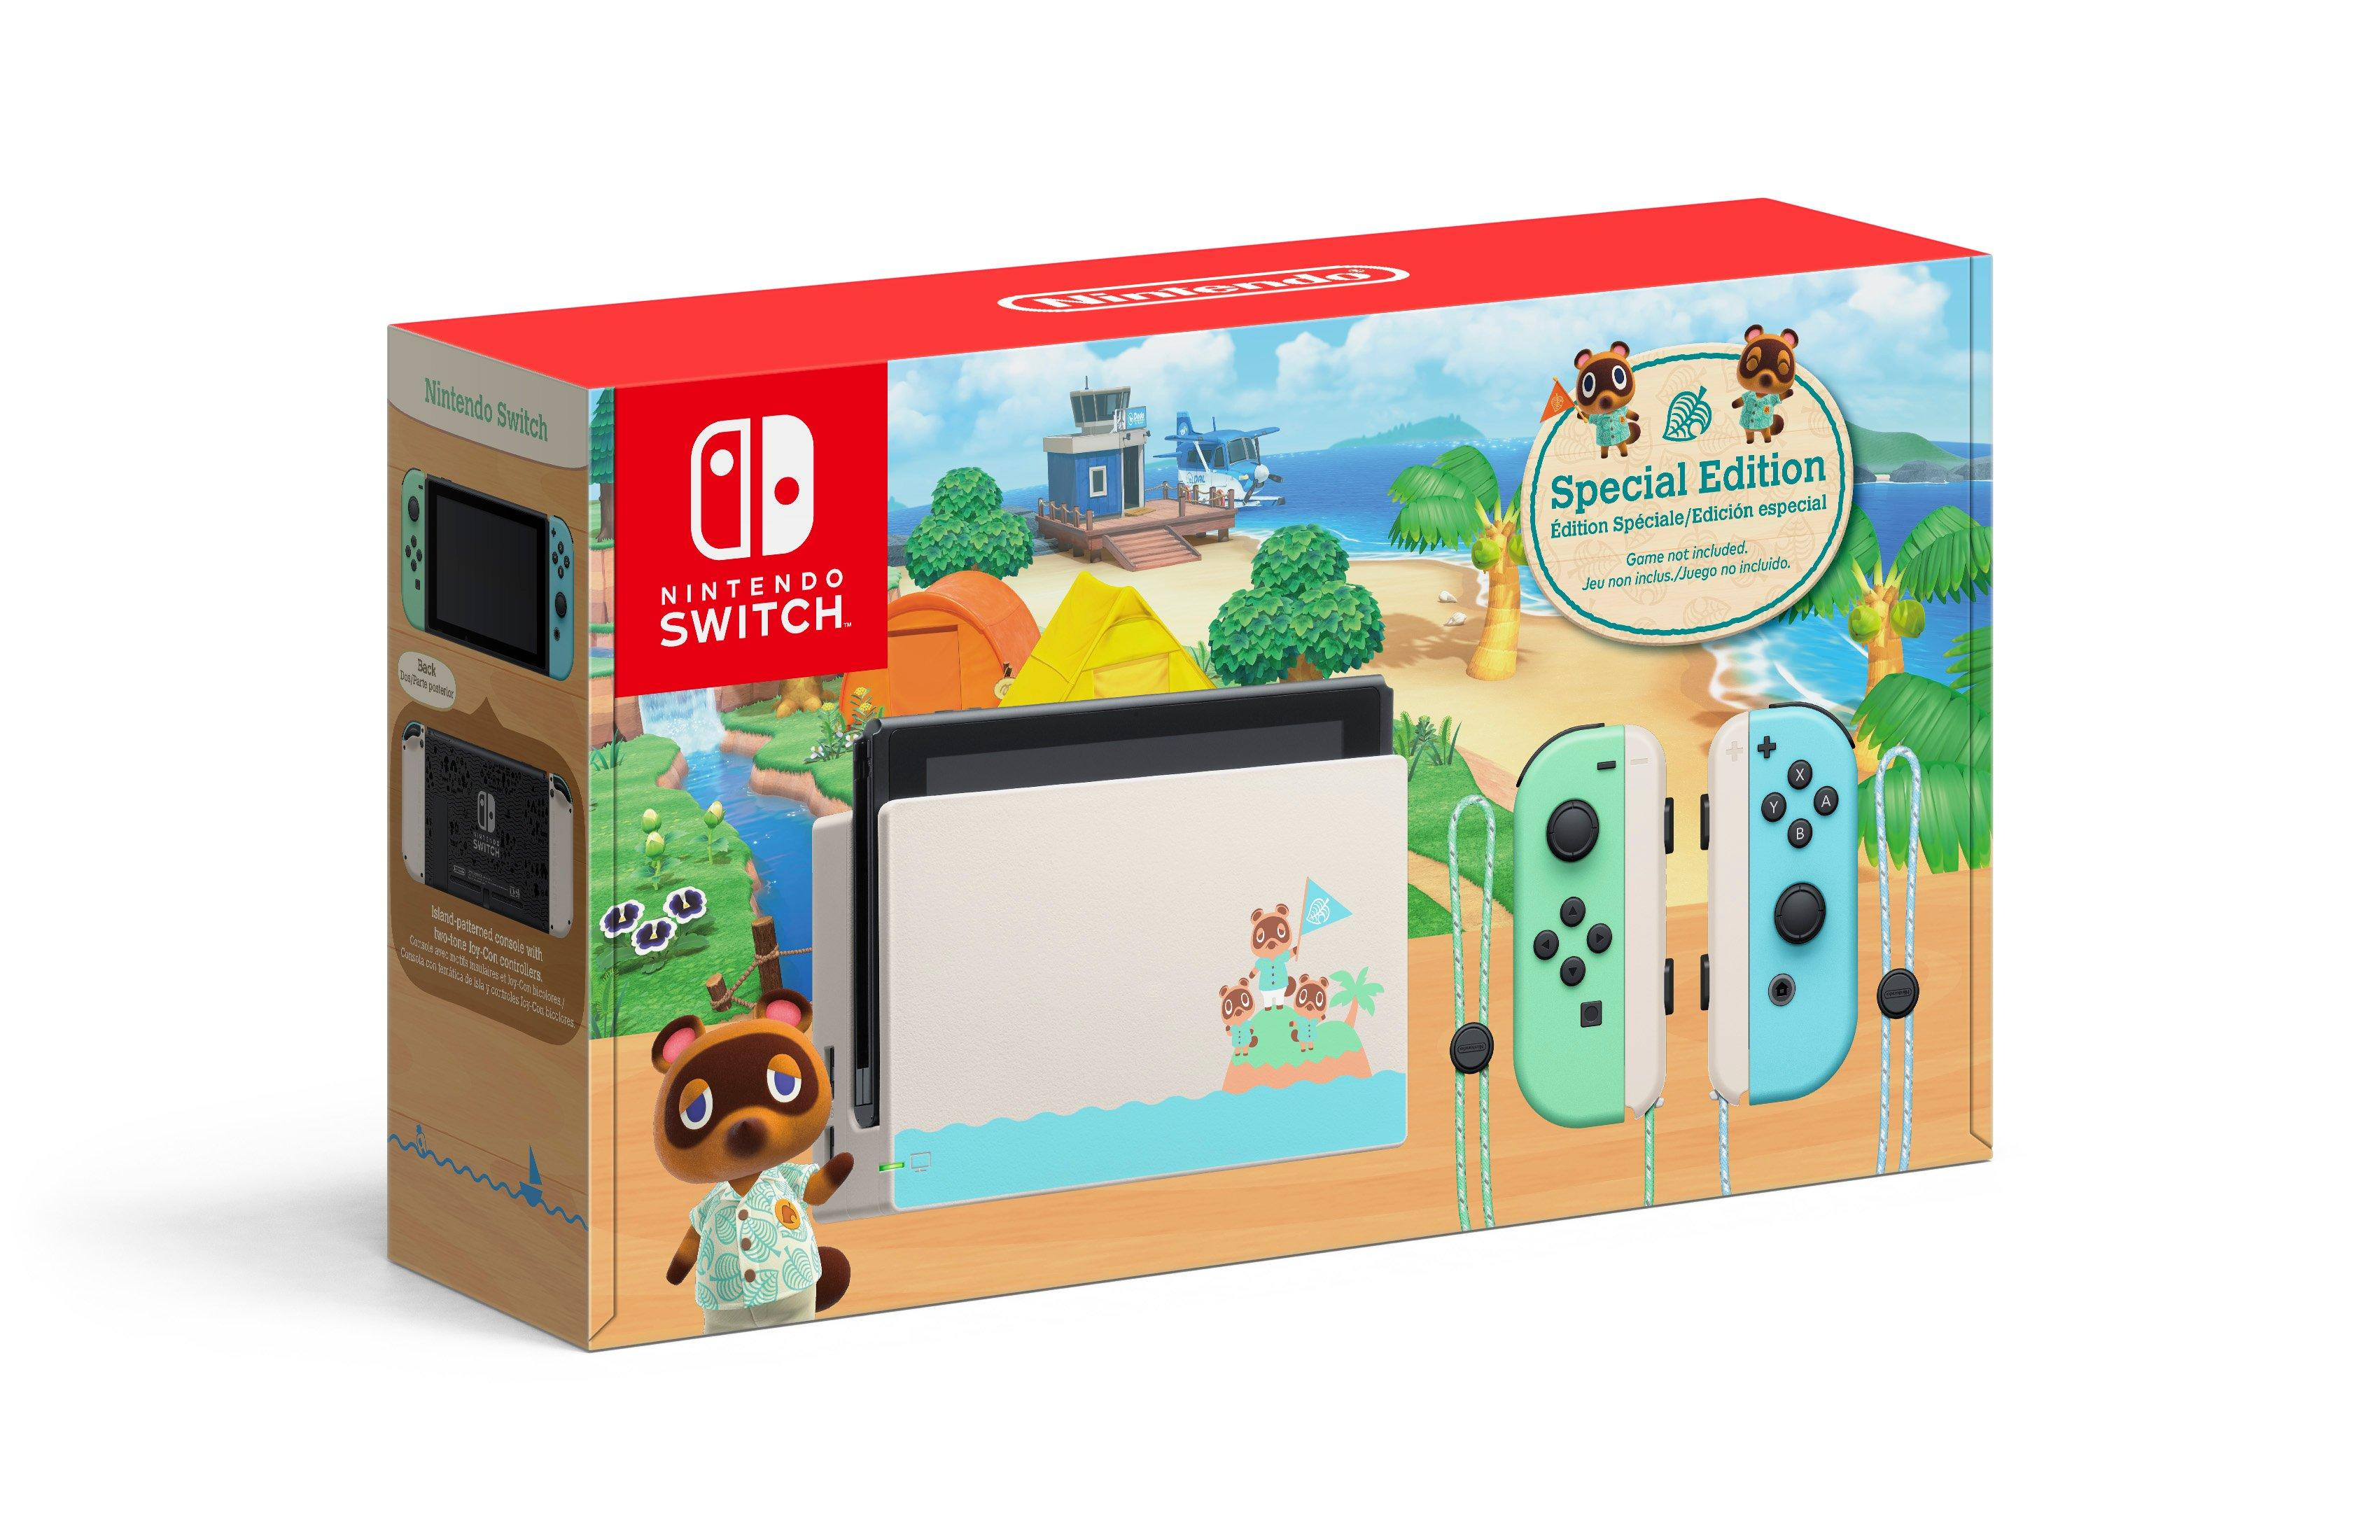 Nintendo Switch Animal Crossing New Horizons Edition Nintendo